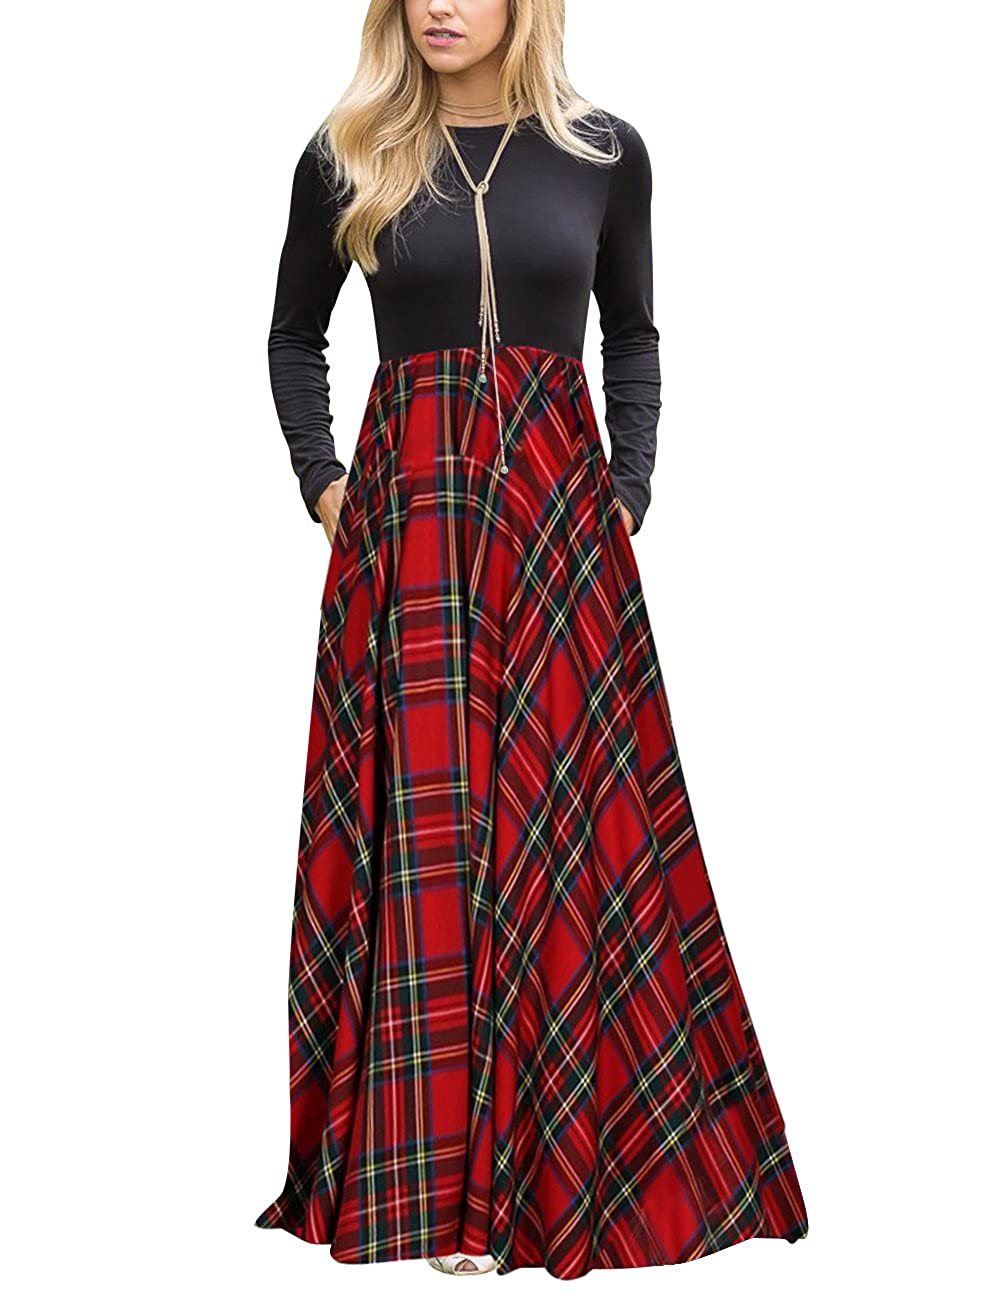 c0b356f146b8 MEROKEETY Women s Plaid Long Sleeve Empire Waist Full Length Maxi Dress  with Pockets at Amazon Women s Clothing store